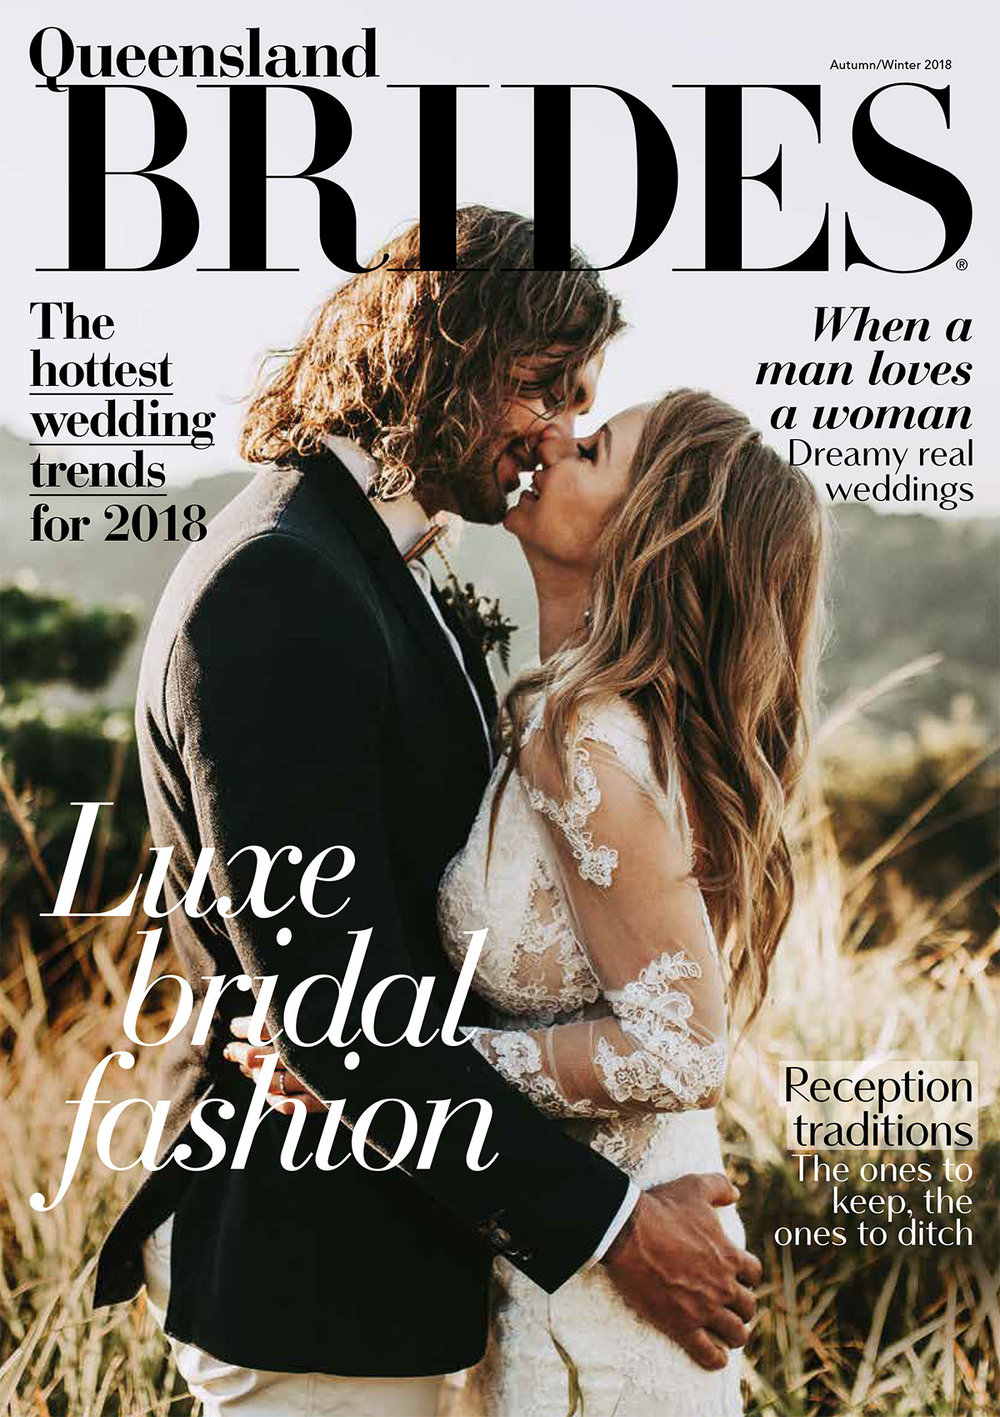 Queensland Brides - Autumn Winter 2018